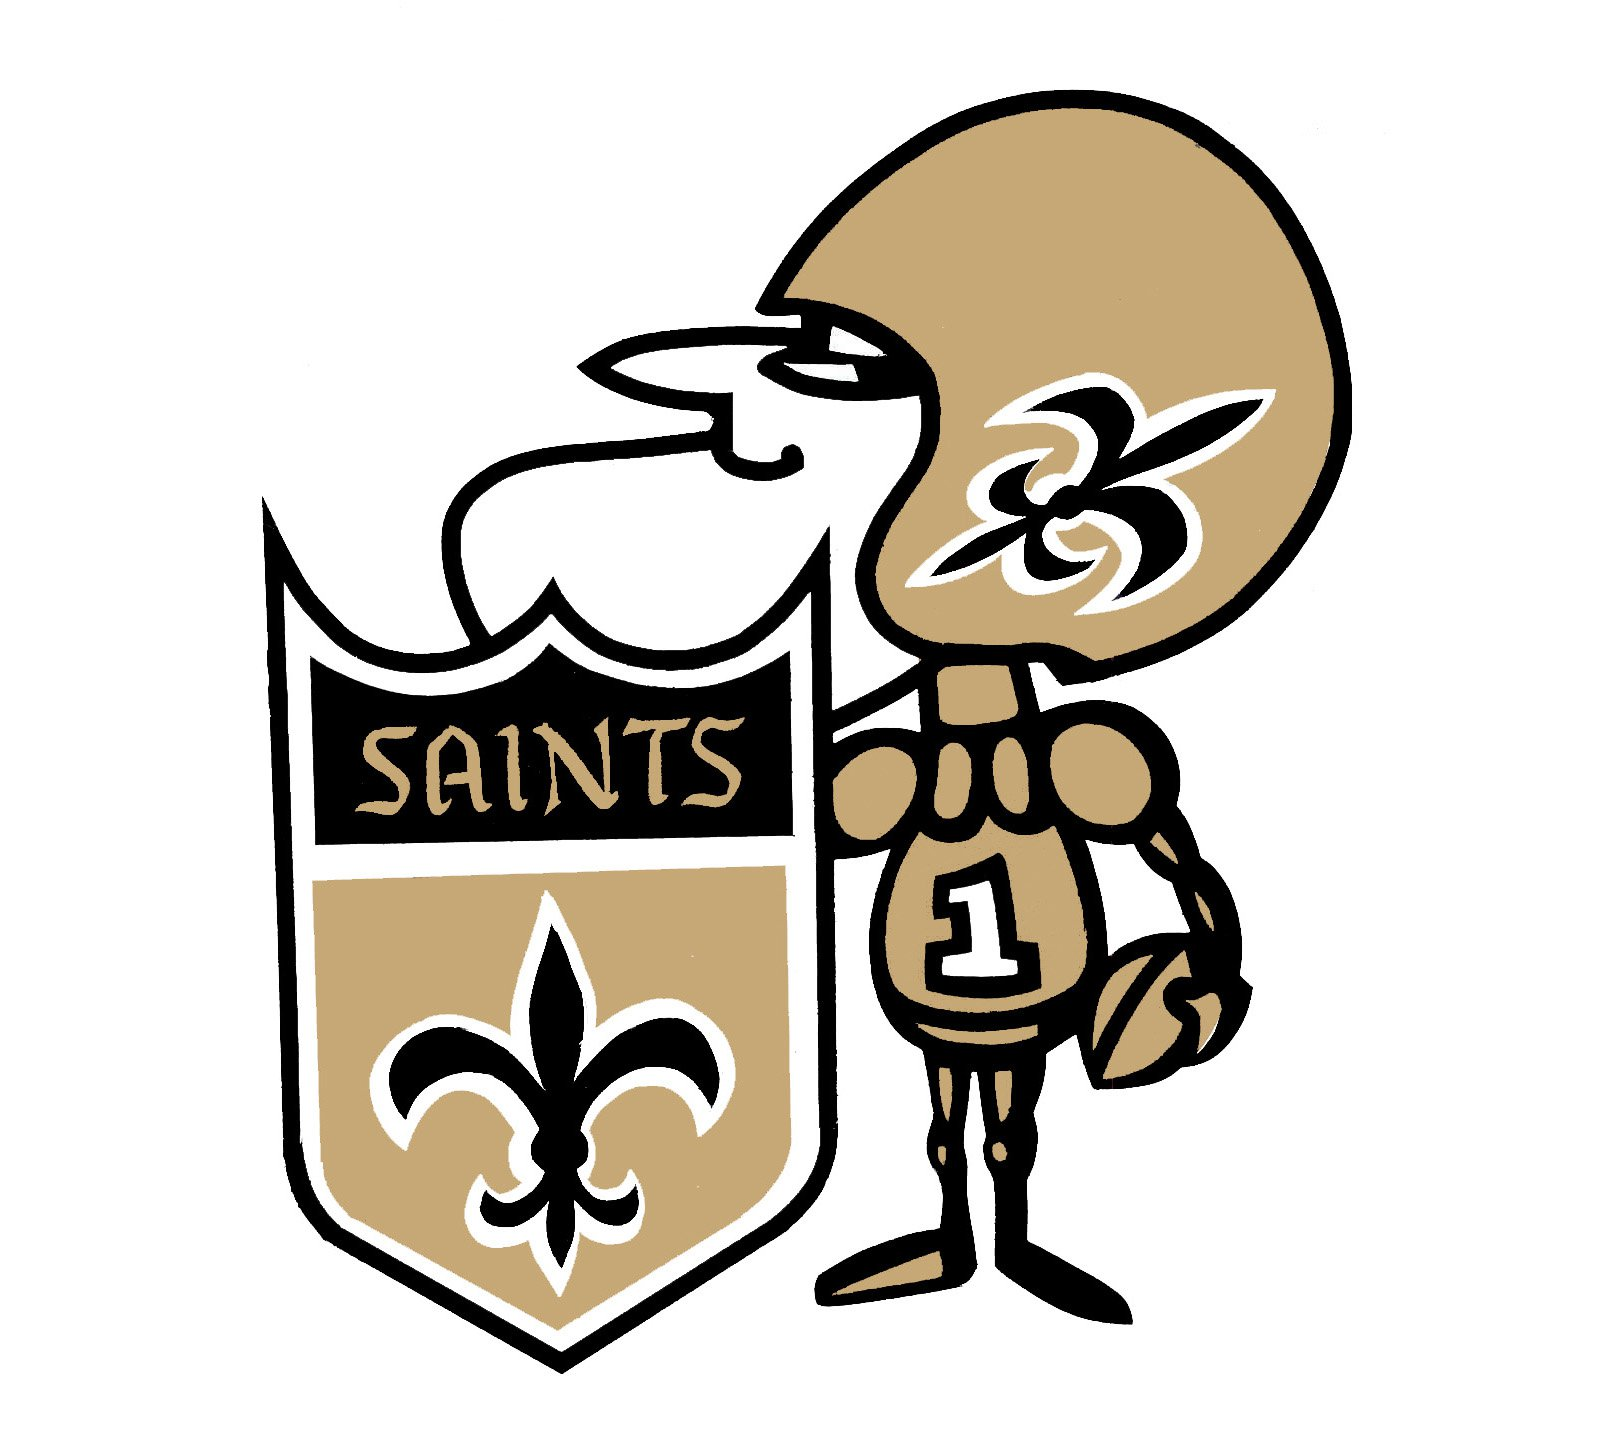 Meaning New Orleans Saints logo and symbol.